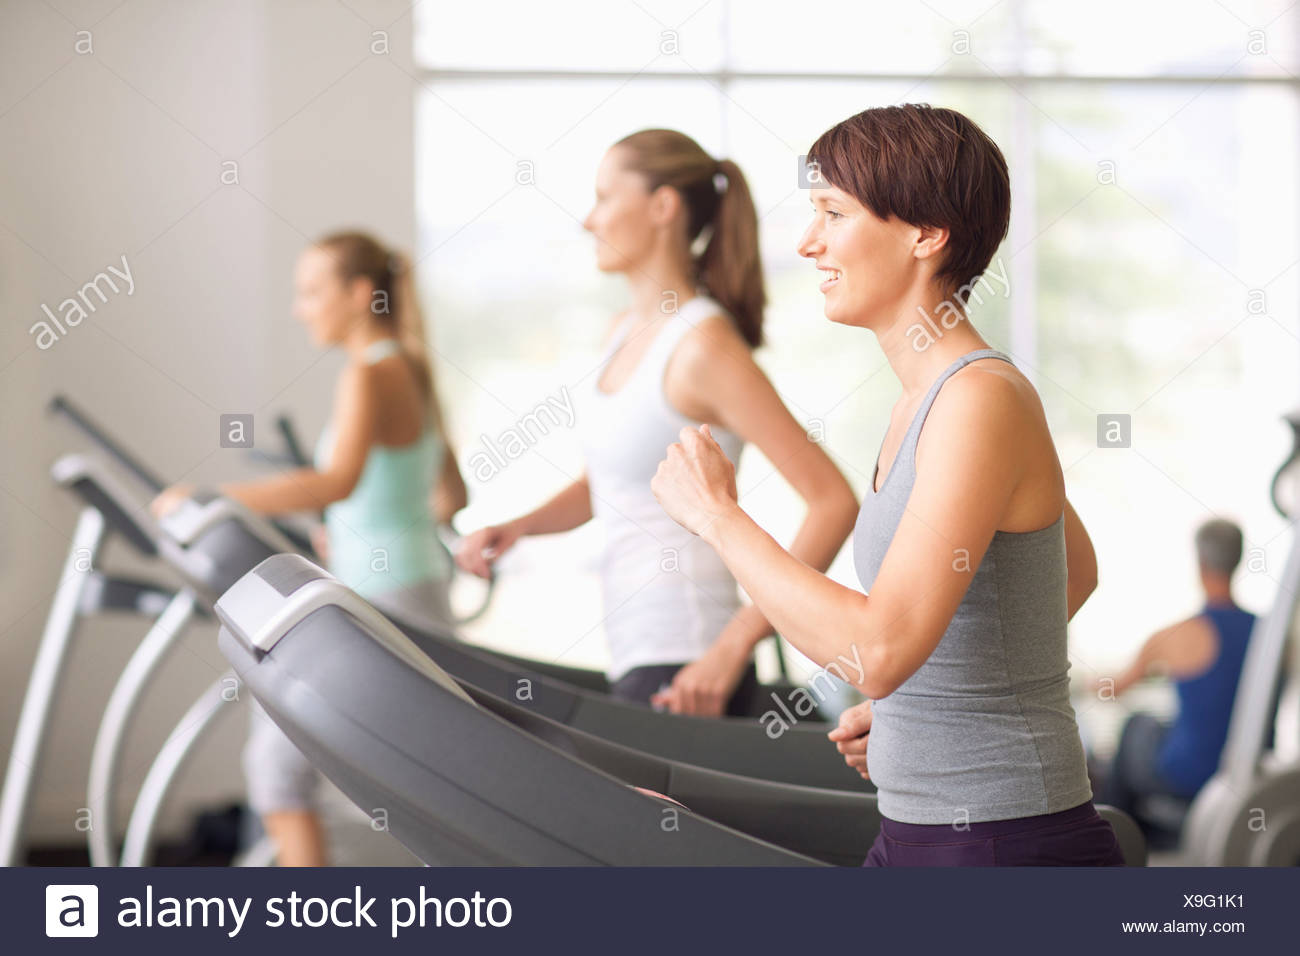 Portrait of smiling women running on treadmills in gymnasium - Stock Image